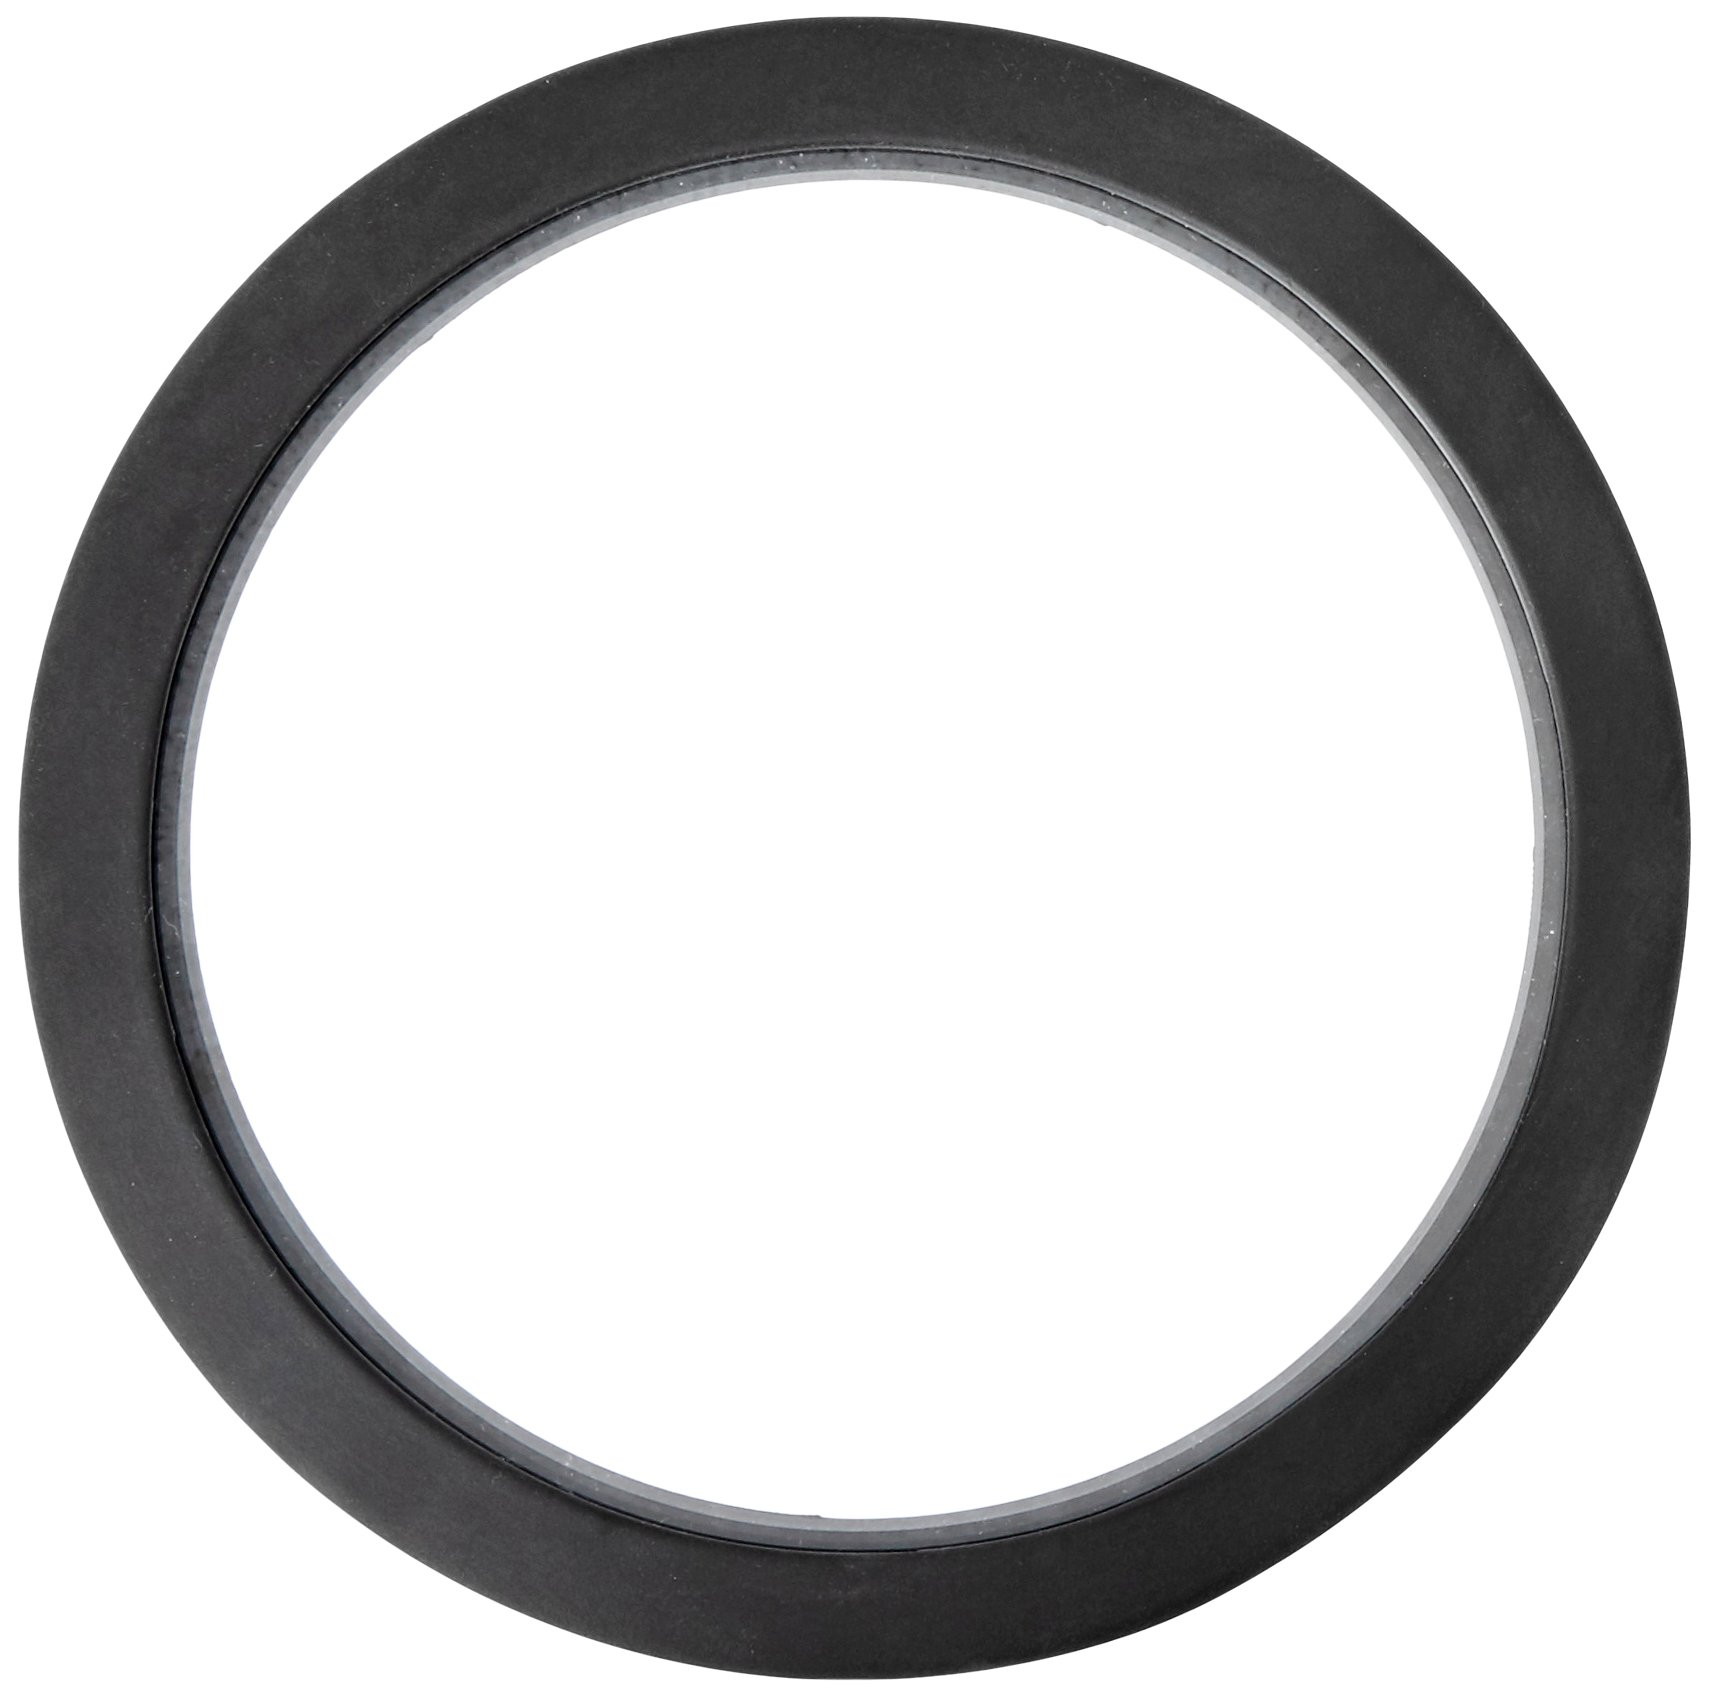 Labconco 7439903 Glass Lid for Freeze Dry System, Small